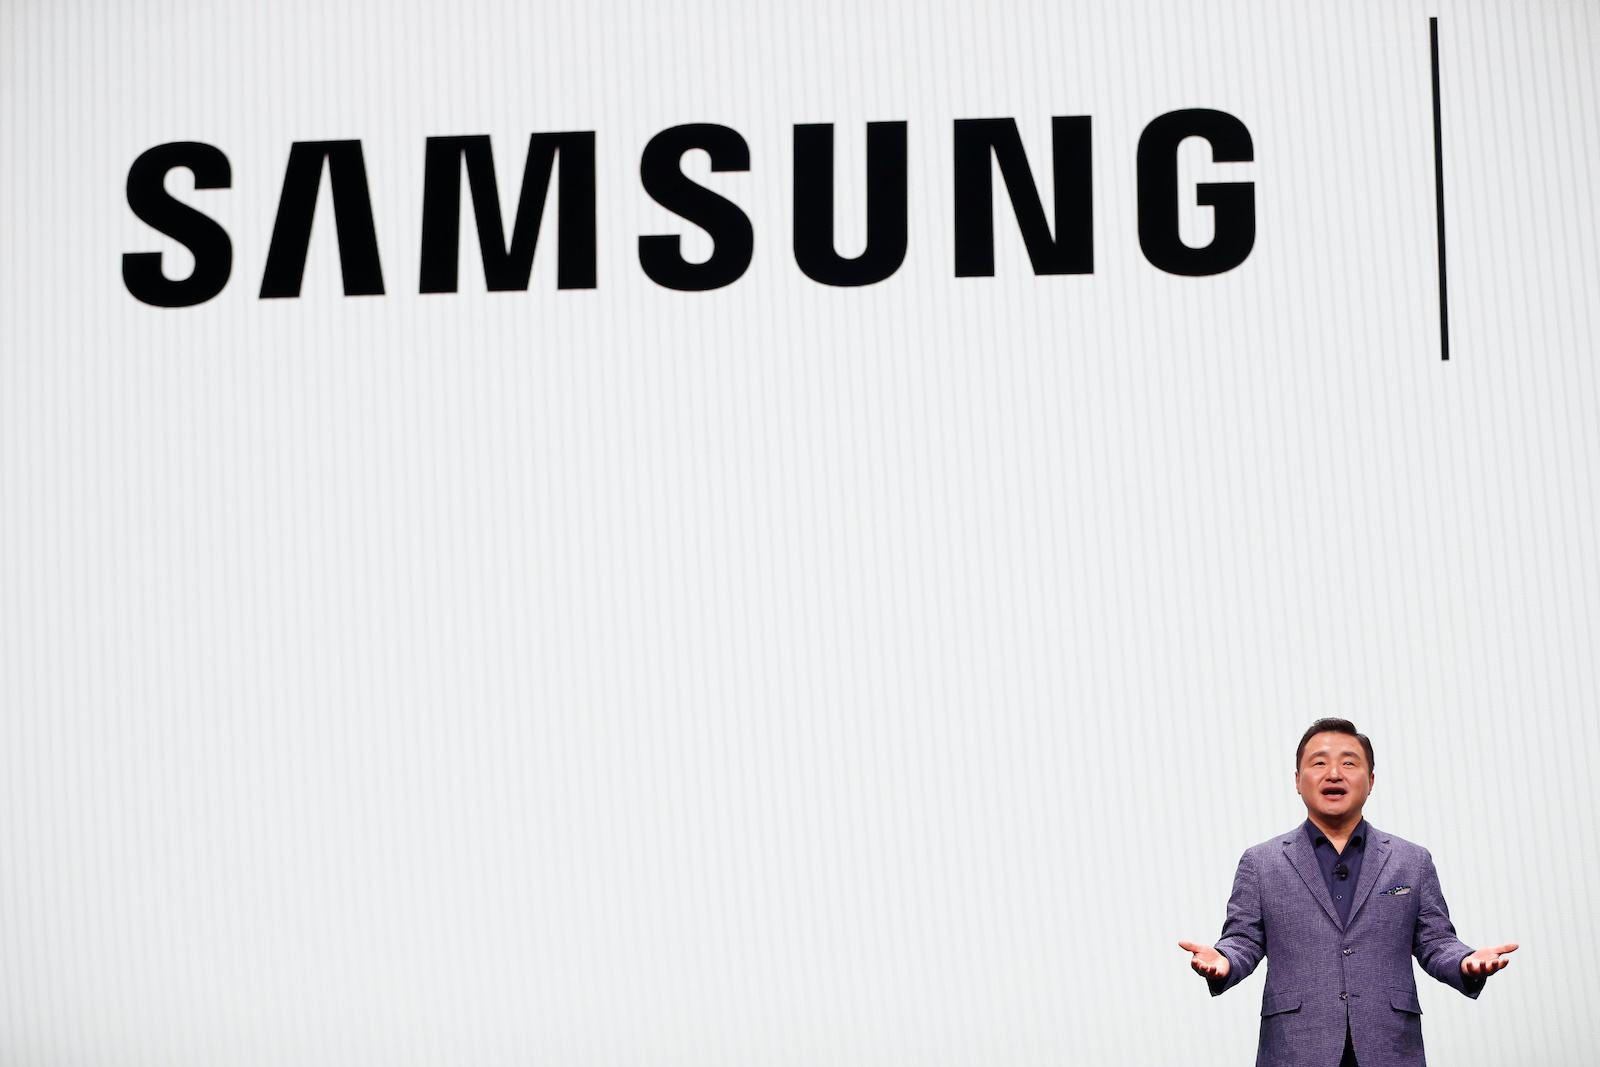 TM Roh, president & head of mobile communications business of Samsung Electronics, speaks on the stage during Samsung Galaxy Unpacked 2020 in San Francisco, California, U.S. February 11, 2020. REUTERS/Stephen Lam - RC2LYE959V9H